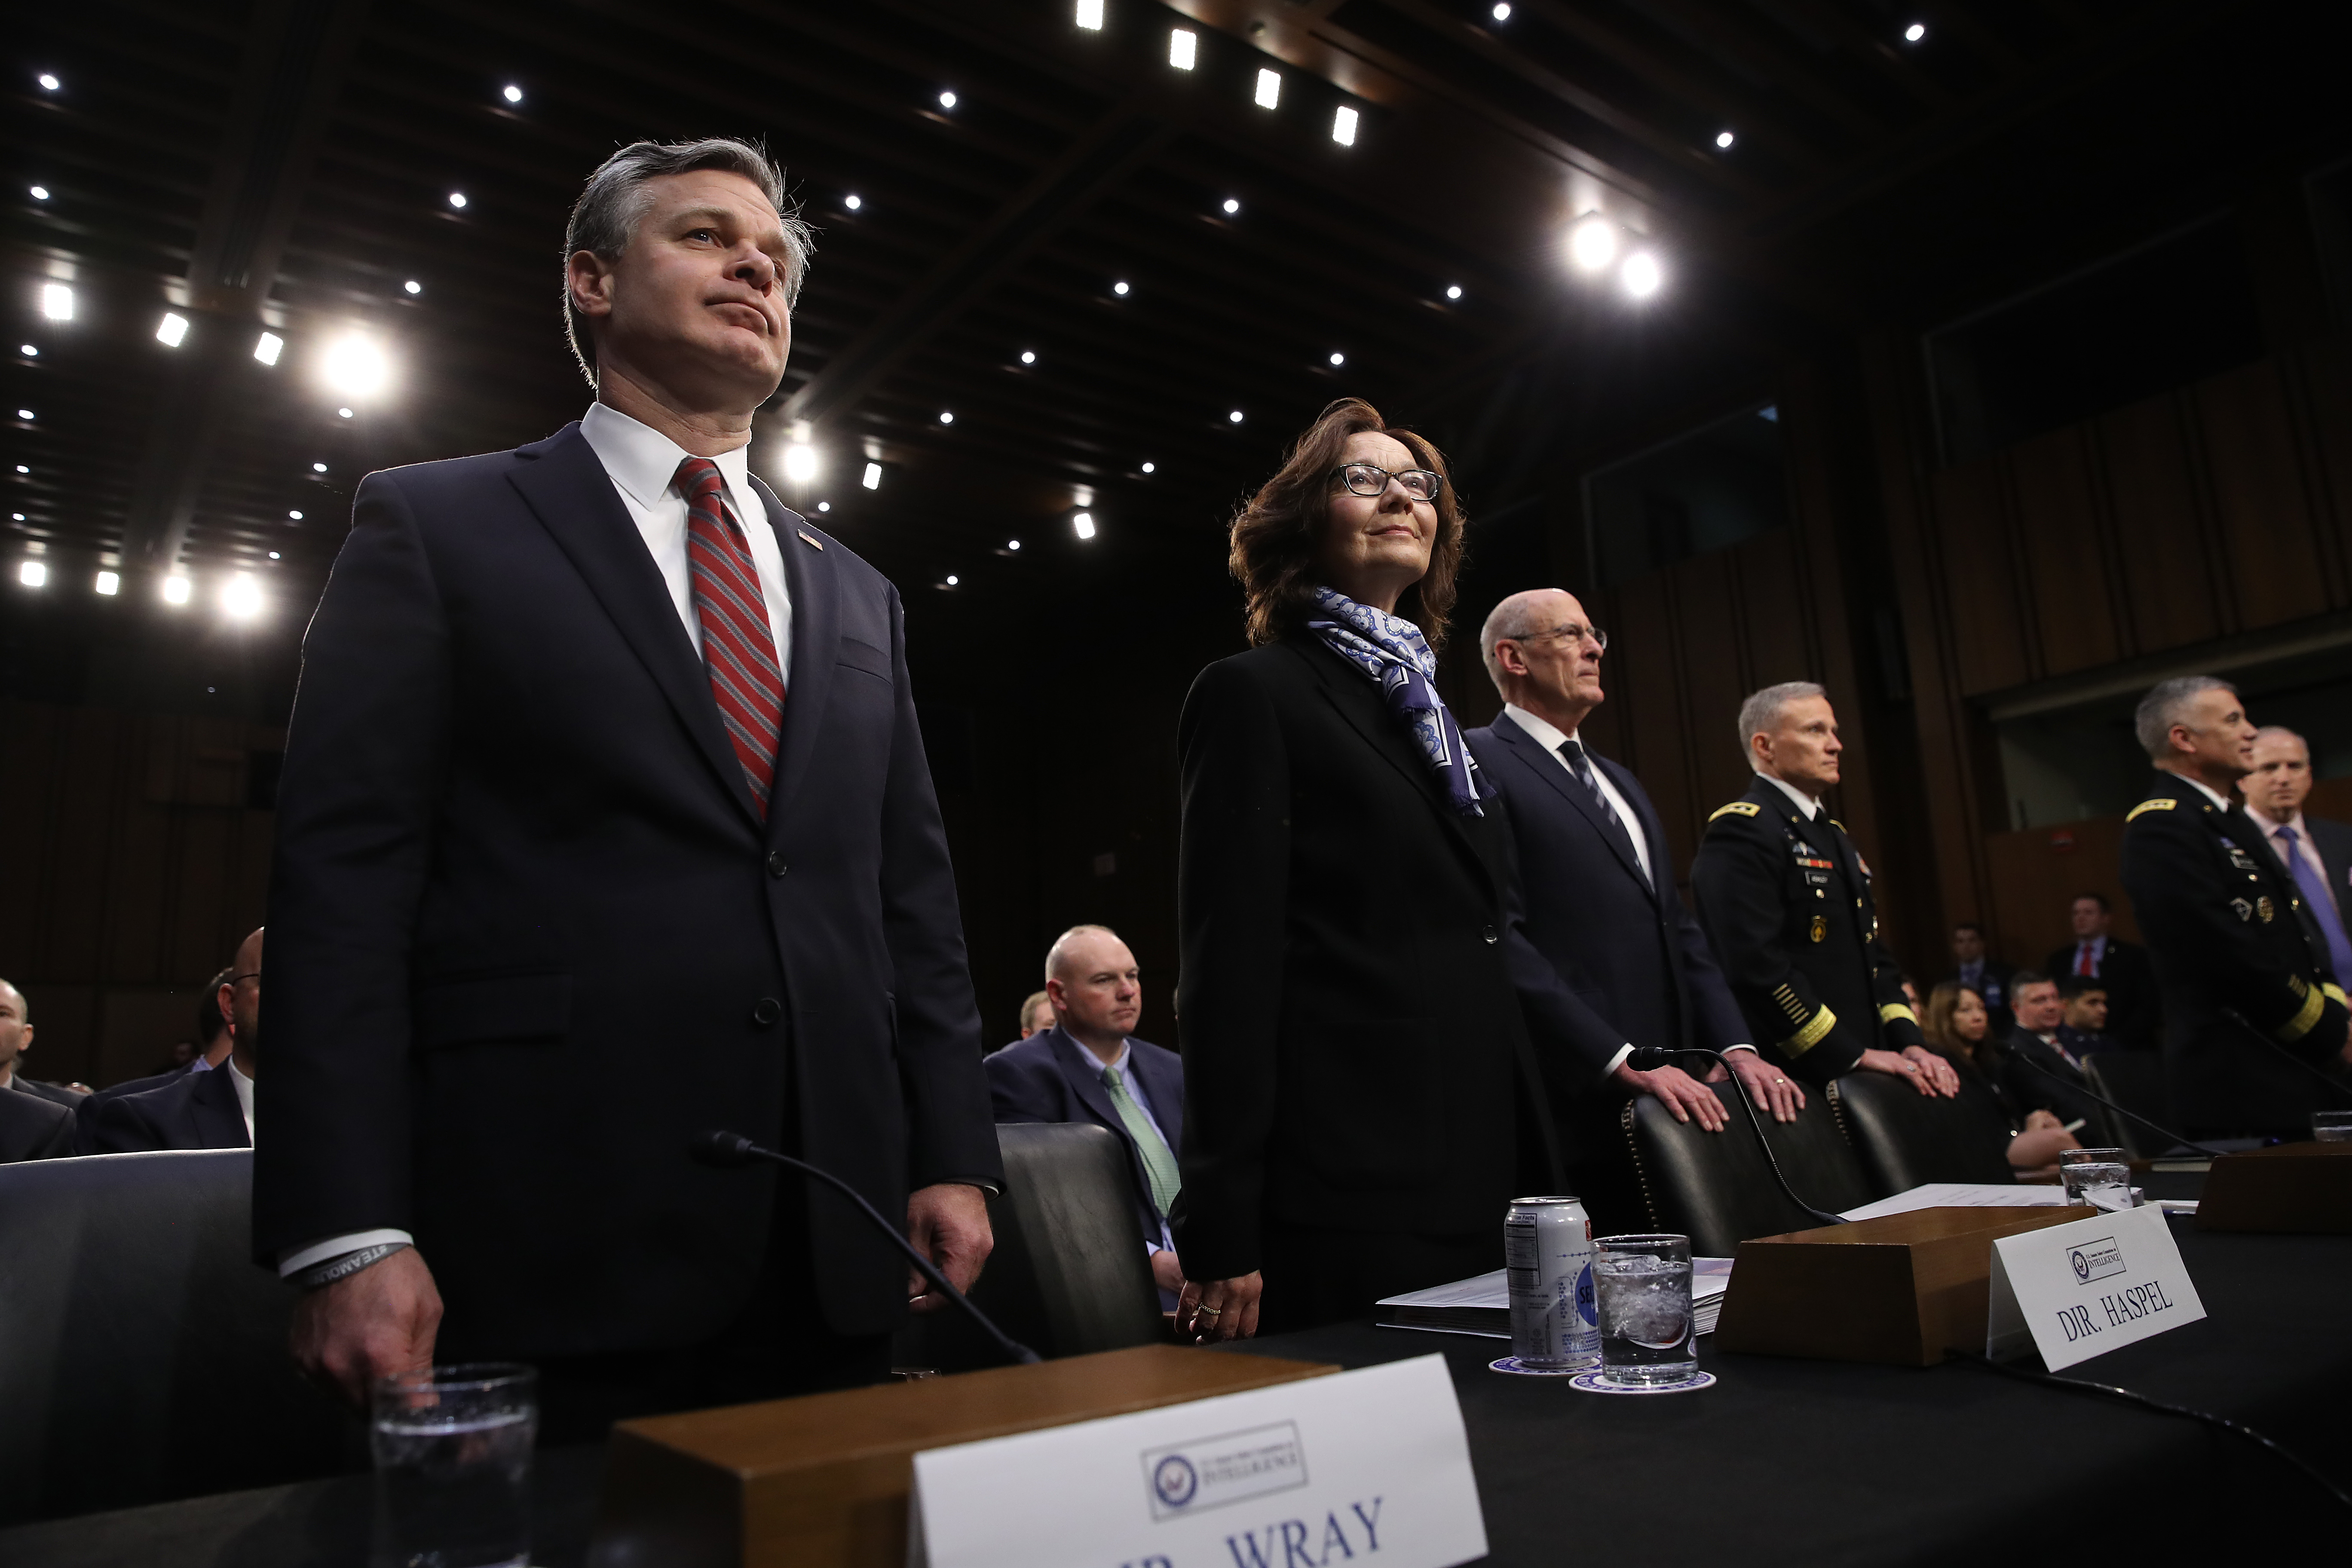 """FBI Director Christopher Wray; CIA Director Gina Haspel; Director of National Intelligence Dan Coats; Gen. Robert Ashley, director of the Defense Intelligence Agency; Gen. Paul Nakasone, director of the National Security Agency; and Robert Cardillo, director of the National Geospatial-Intelligence Agency await the start of a Senate Intelligence Committee hearing on """"Worldwide Threats"""" January 29, 2019 in Washington, DC. (Photo by Win McNamee/Getty Images)"""